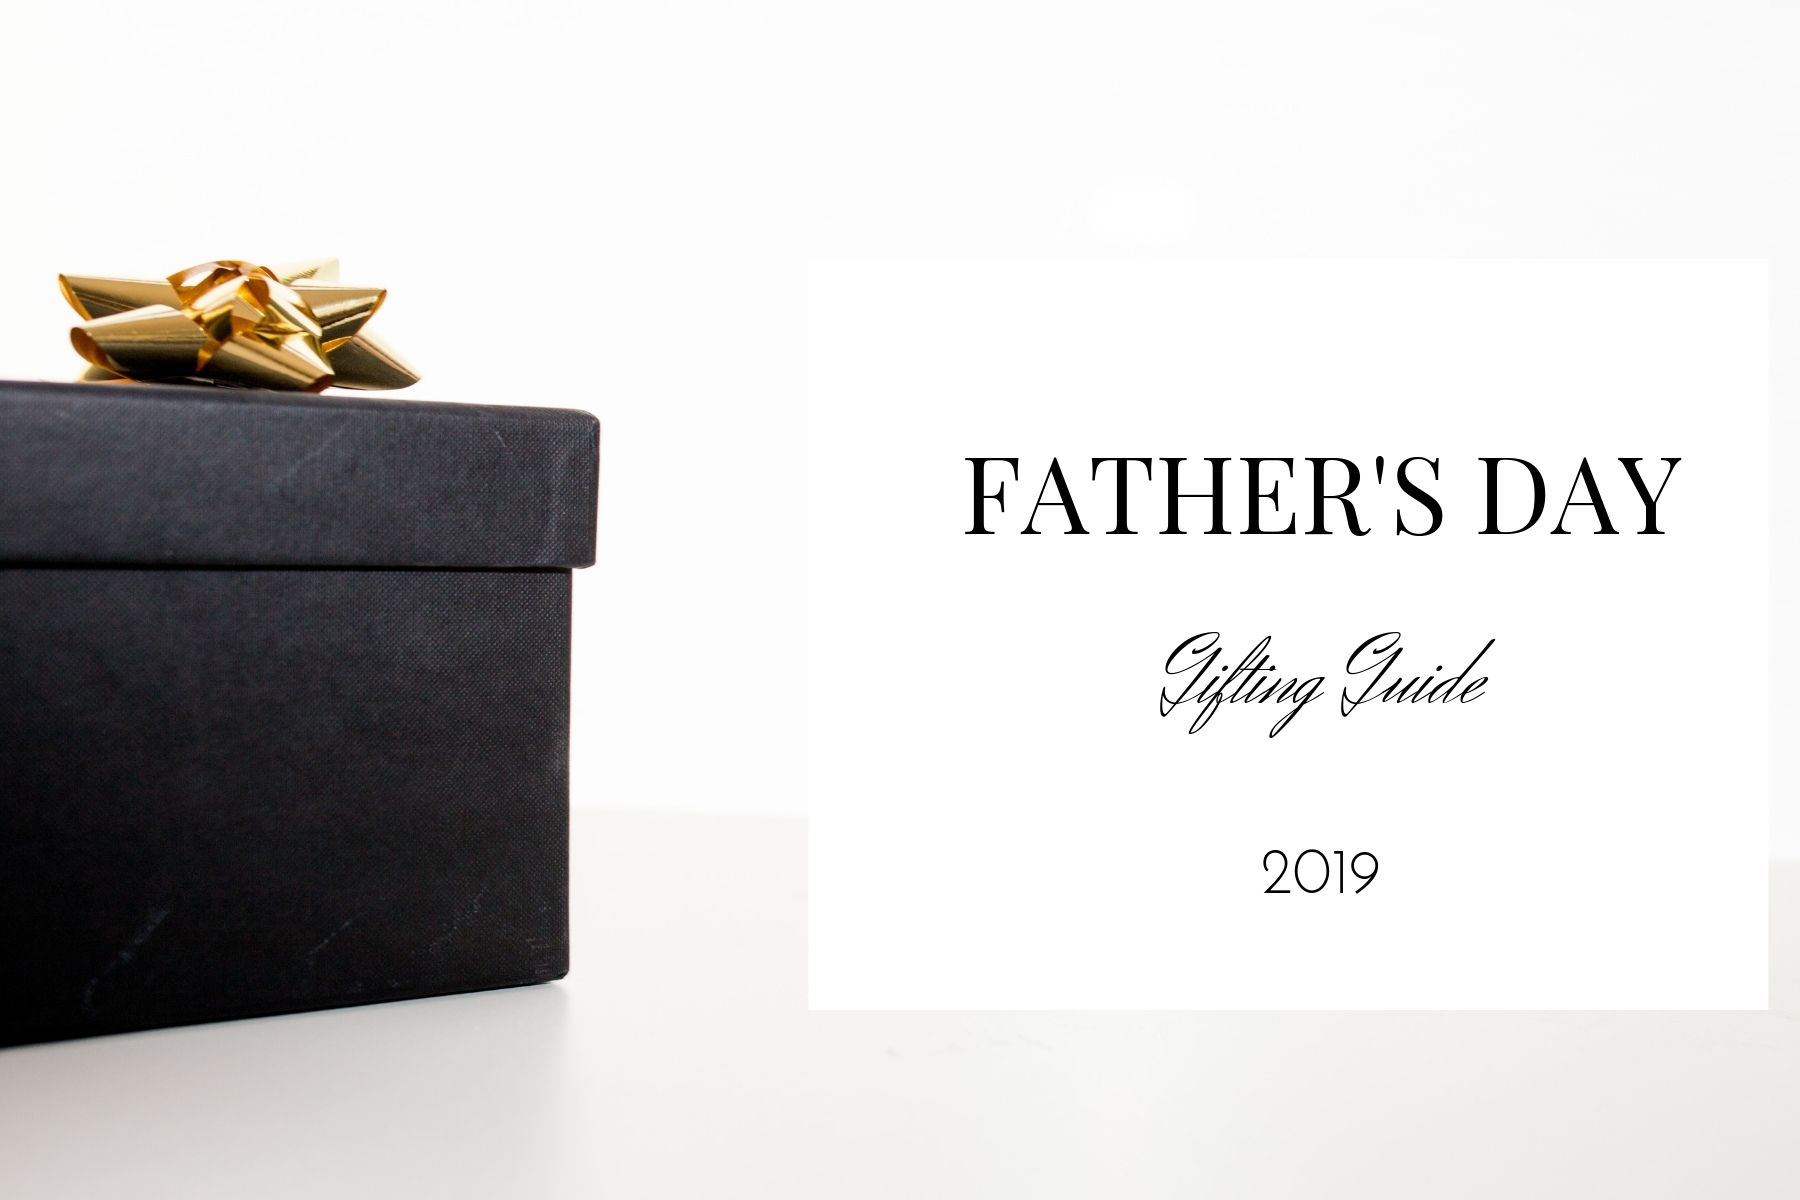 Home Artisan Father's Day Gifting Guide 2019